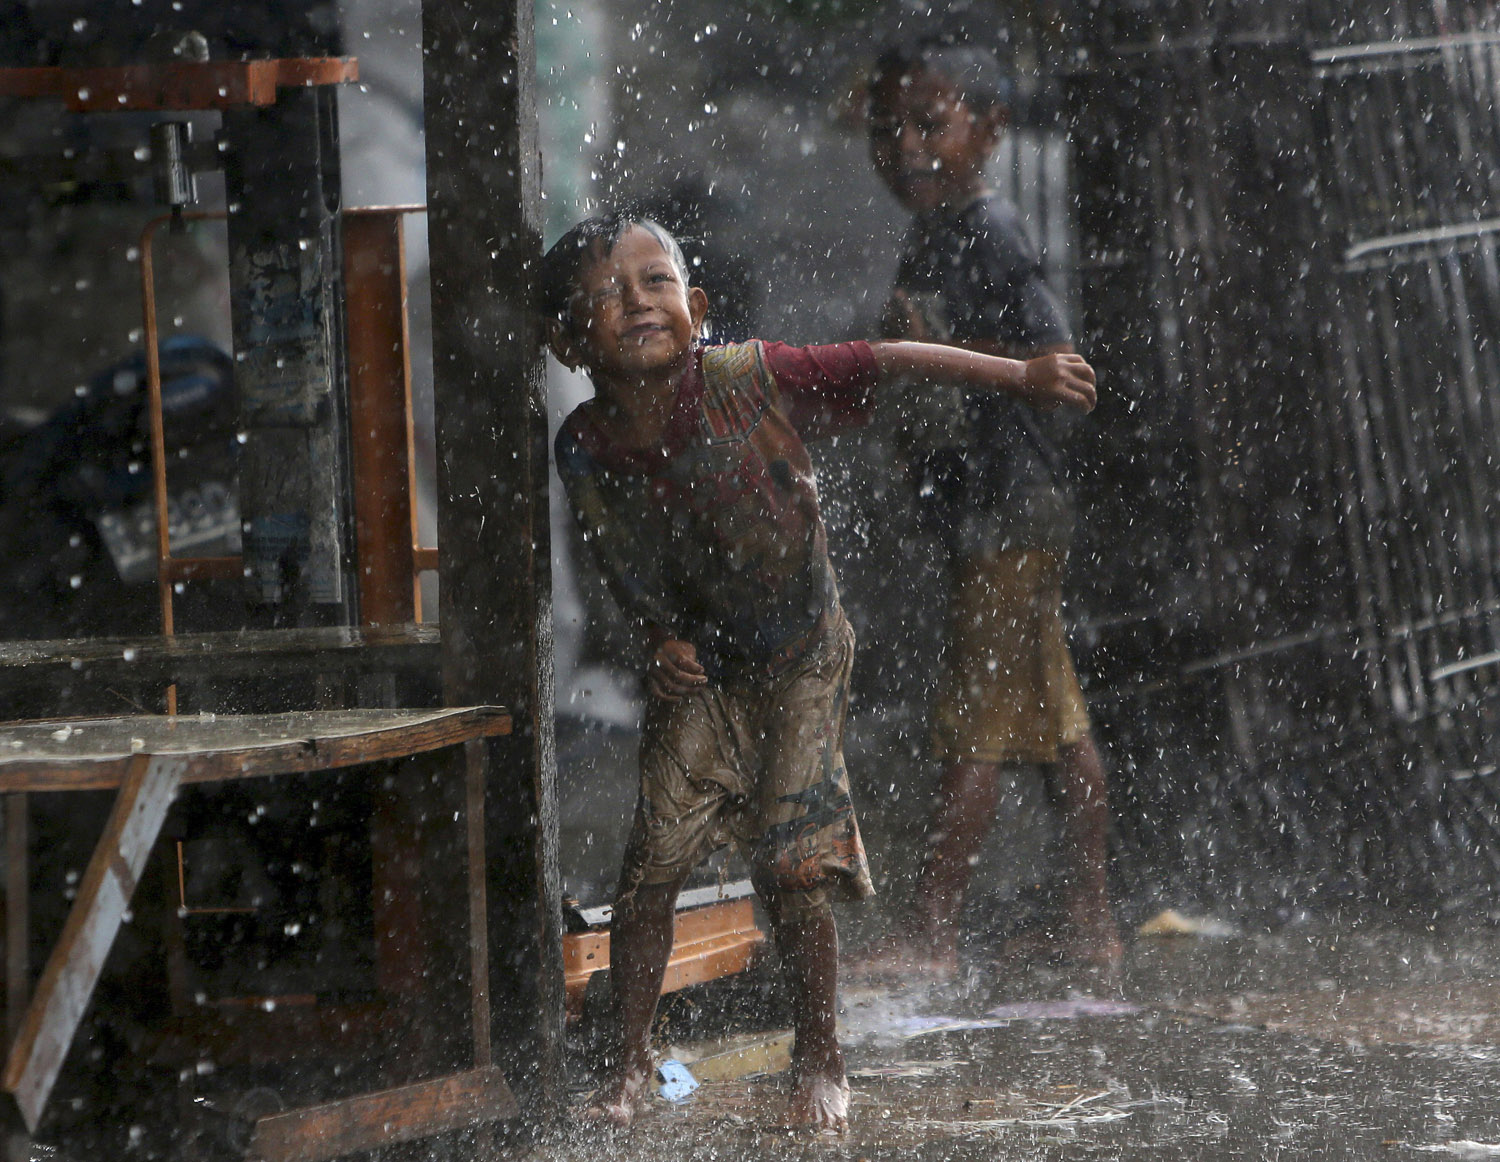 Indonesian children play in the rain during a heavy downpour in Jakarta on May 28, 2014.